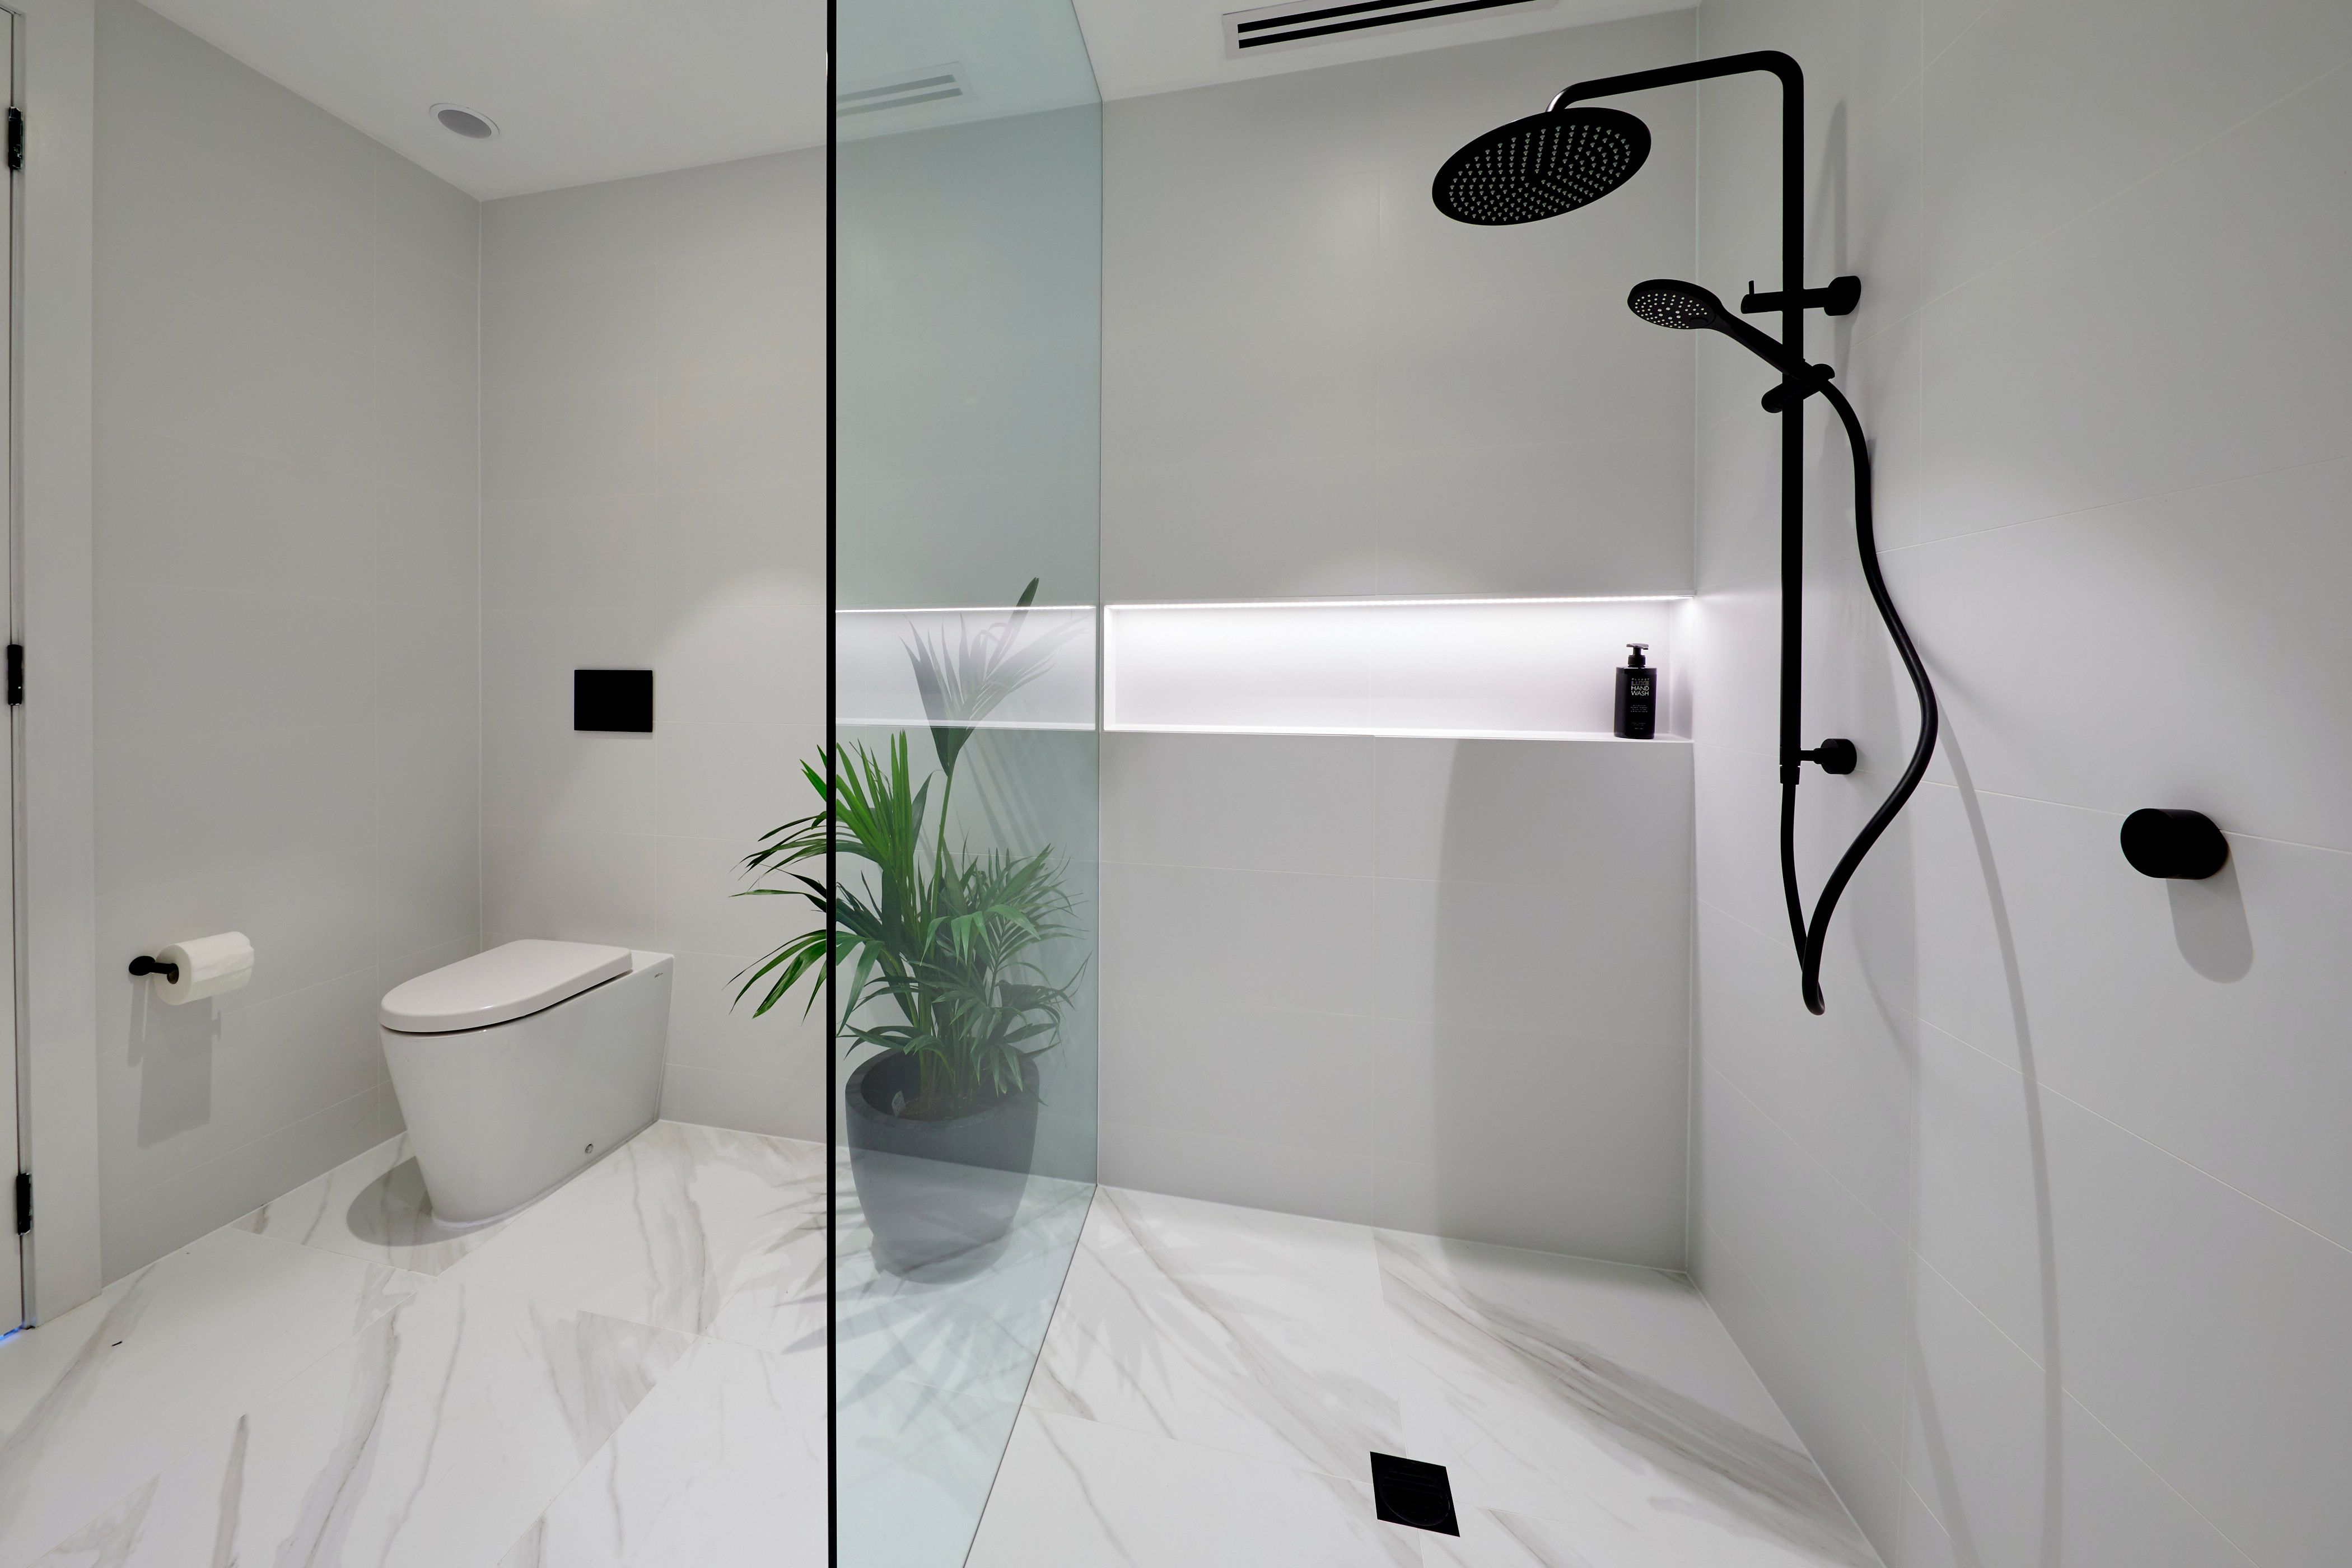 Kerry spences master ensuite from the black 2018 at the